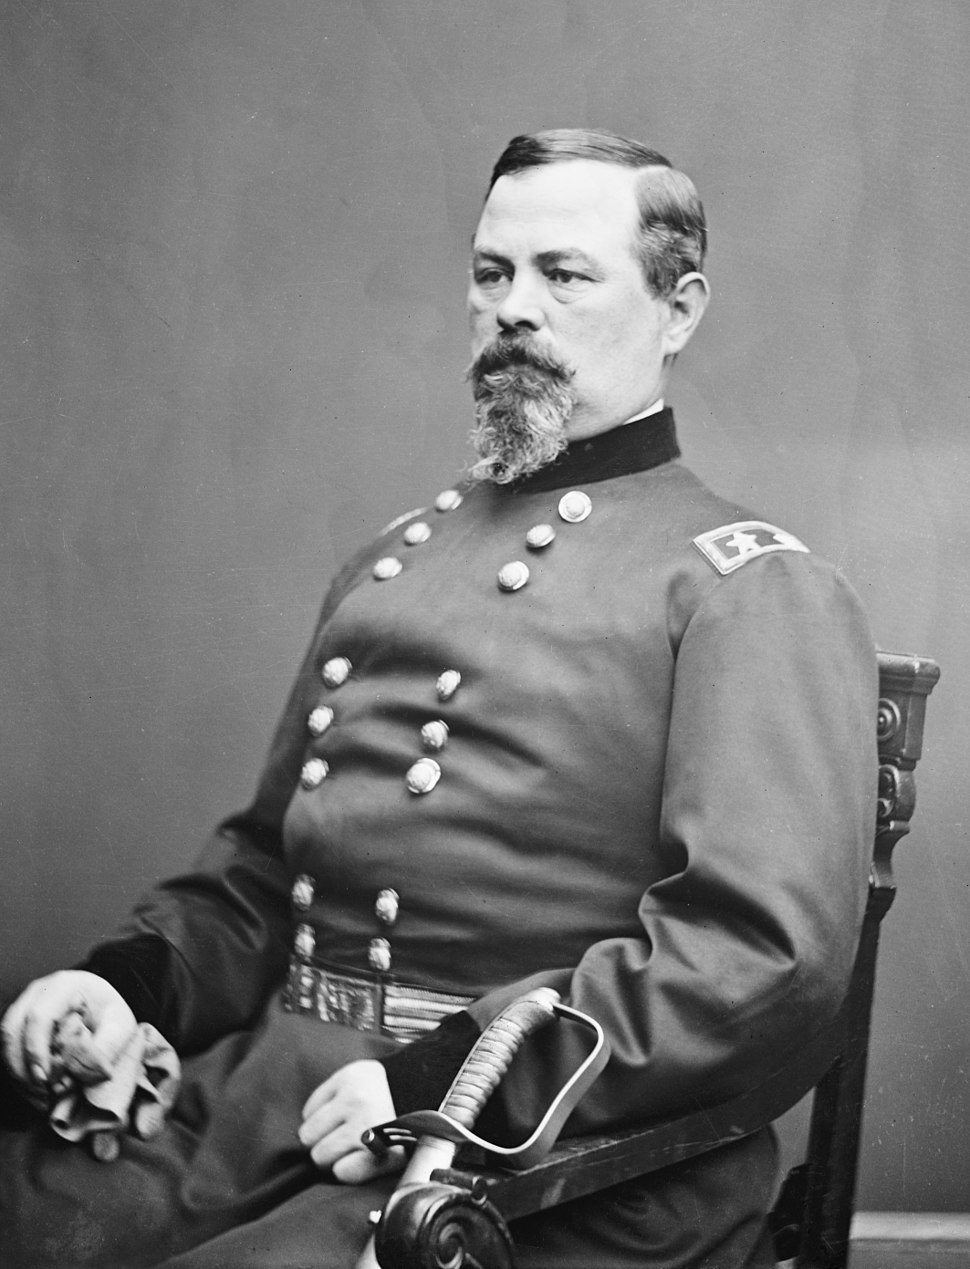 Portrait of Maj. Gen. Irvin McDowell, officer of the Federal Army